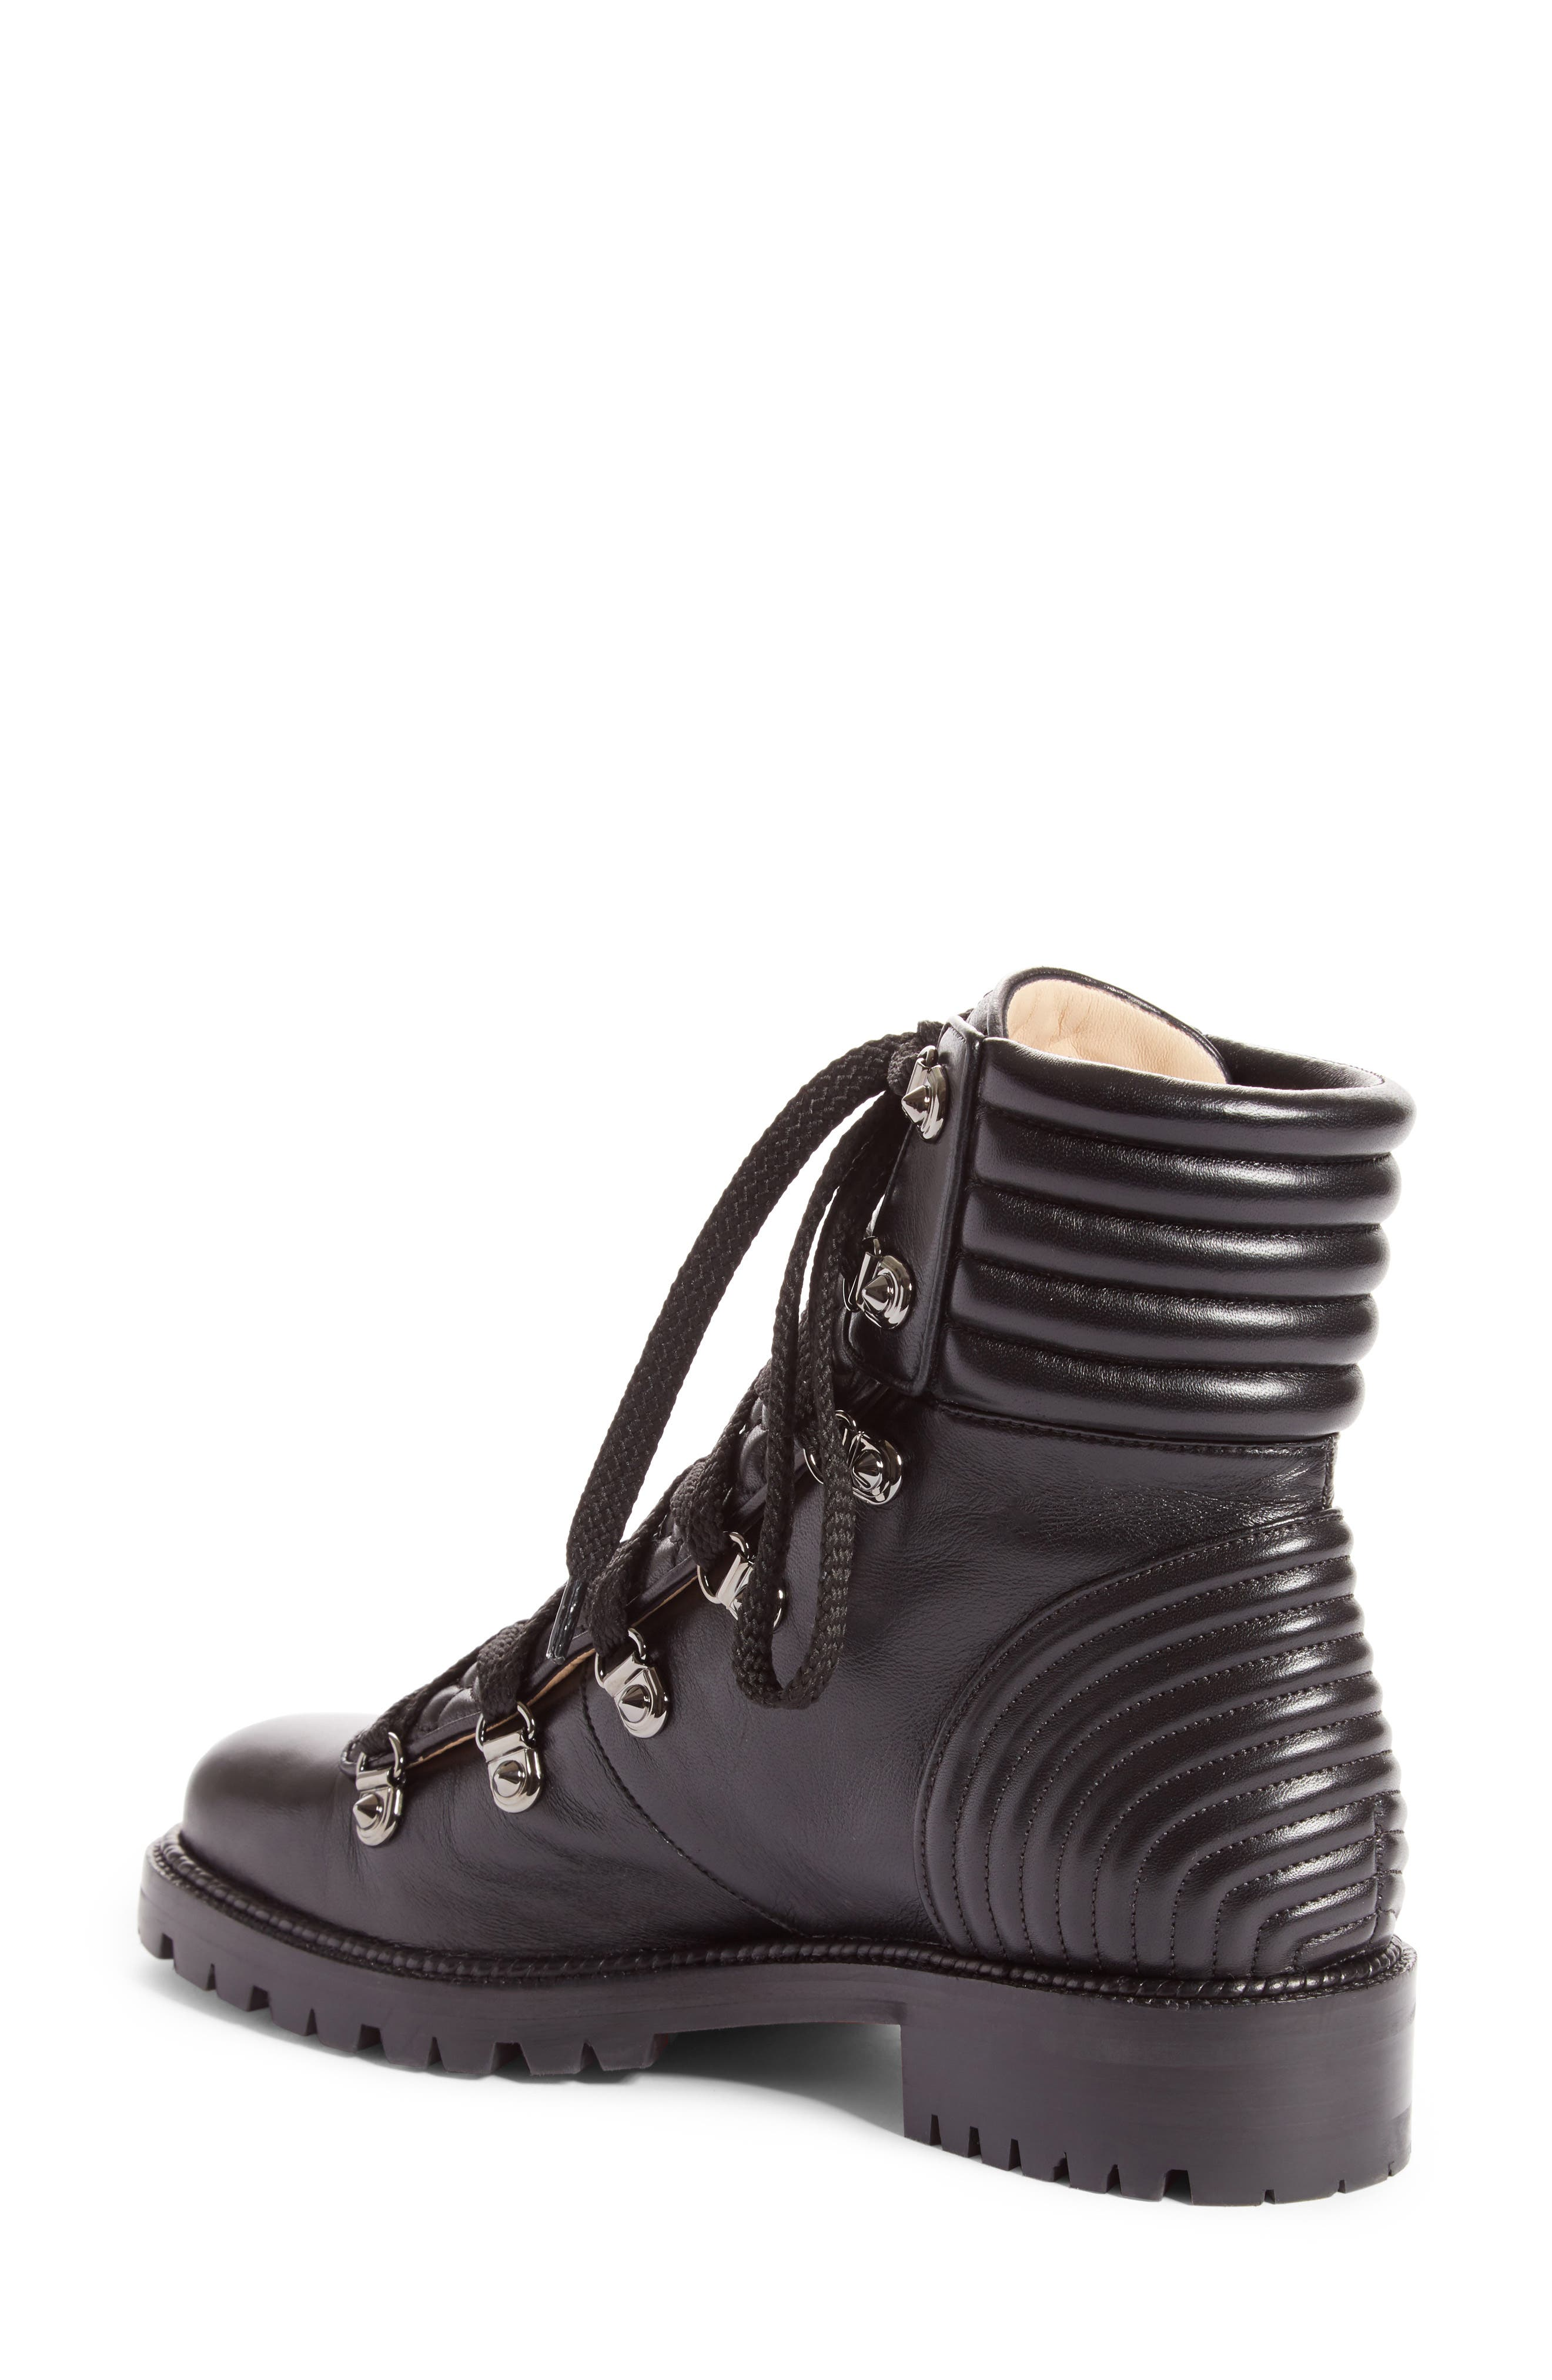 Mad Combat Boot,                             Alternate thumbnail 2, color,                             Black Leather